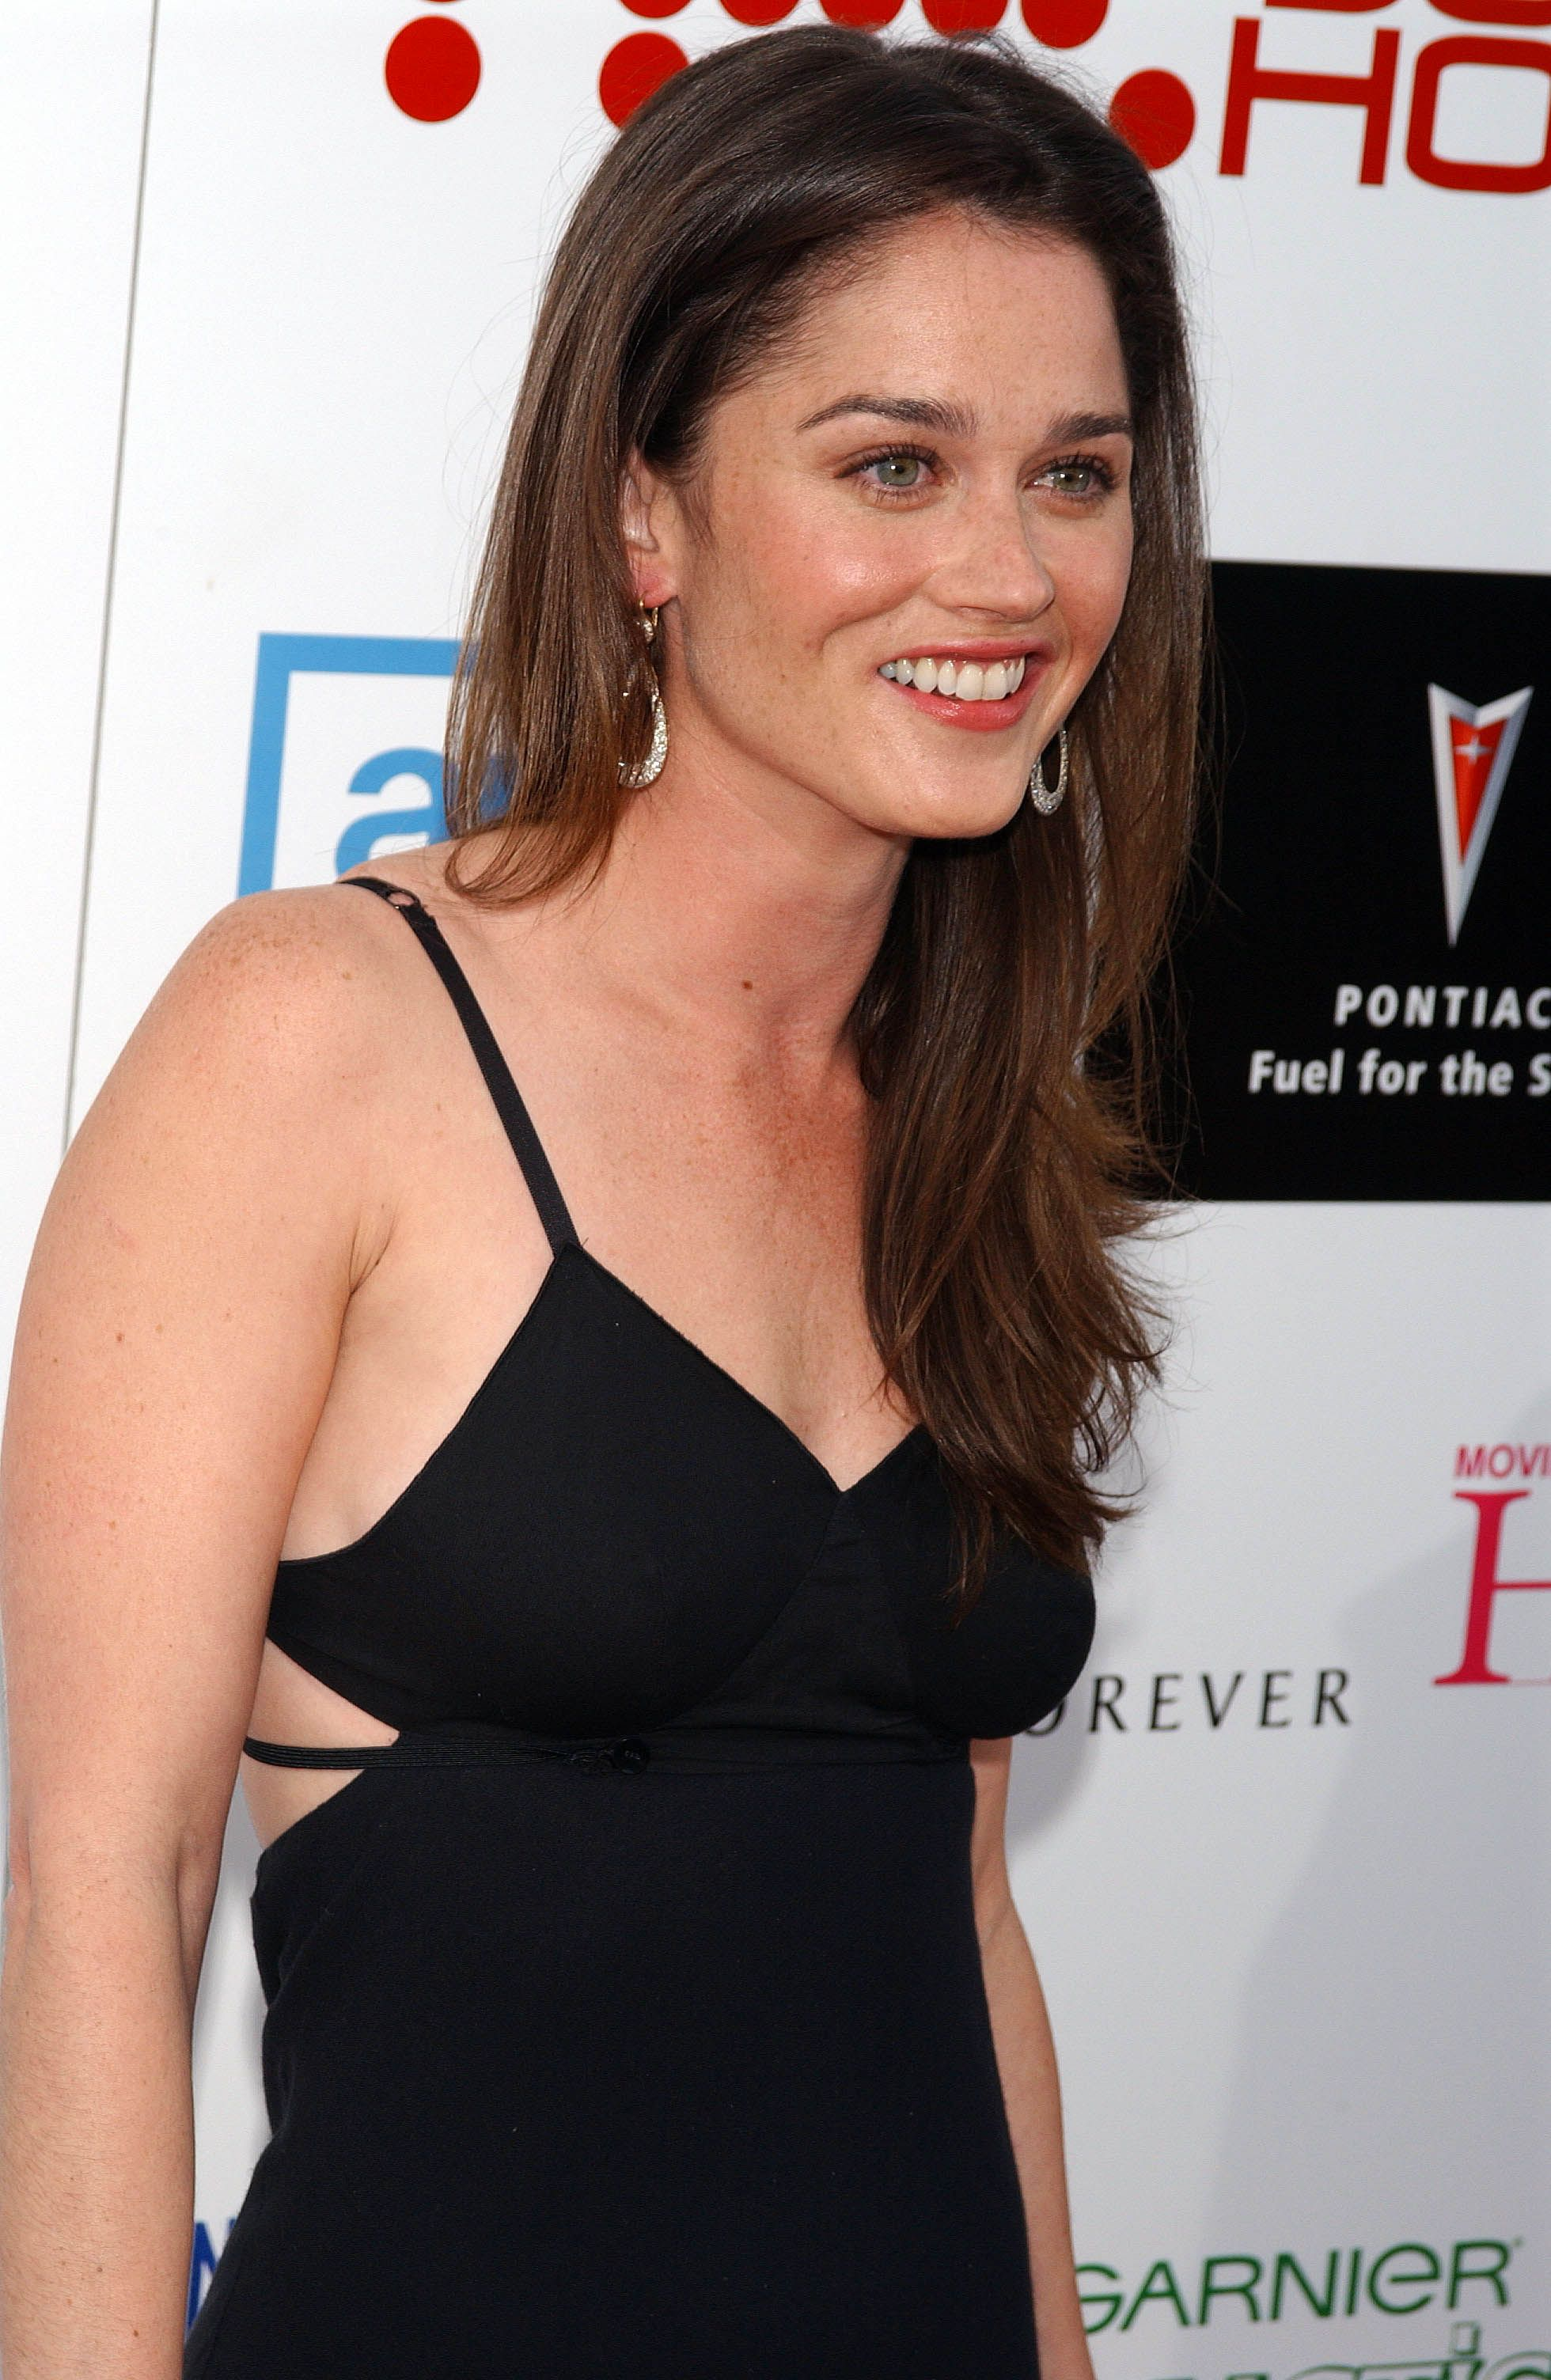 Robin Tunney nude (58 foto), young Erotica, YouTube, swimsuit 2016